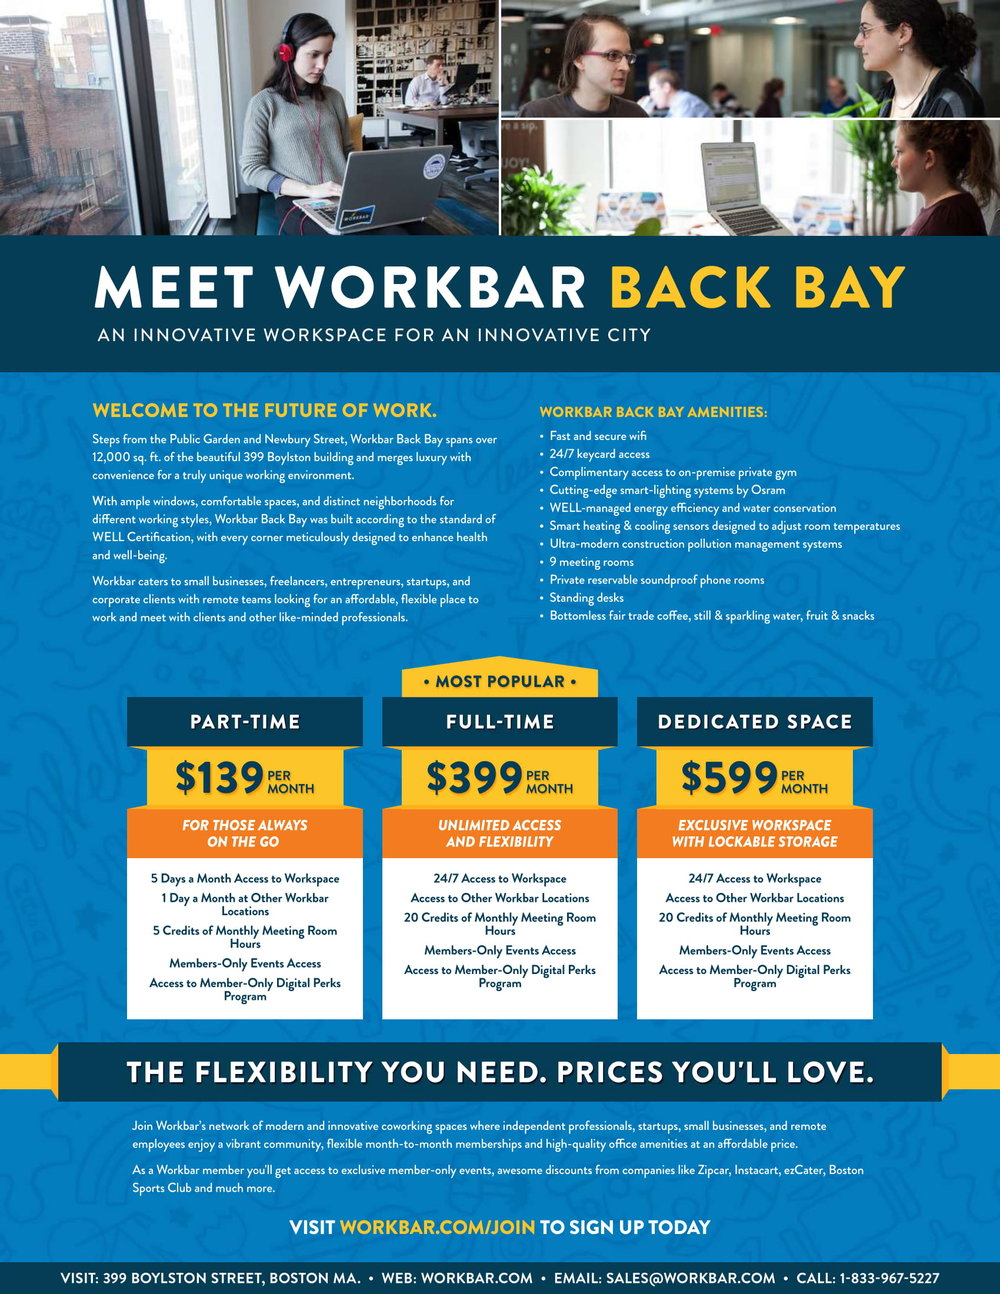 Workbar Back Bay - Digital-1.jpg